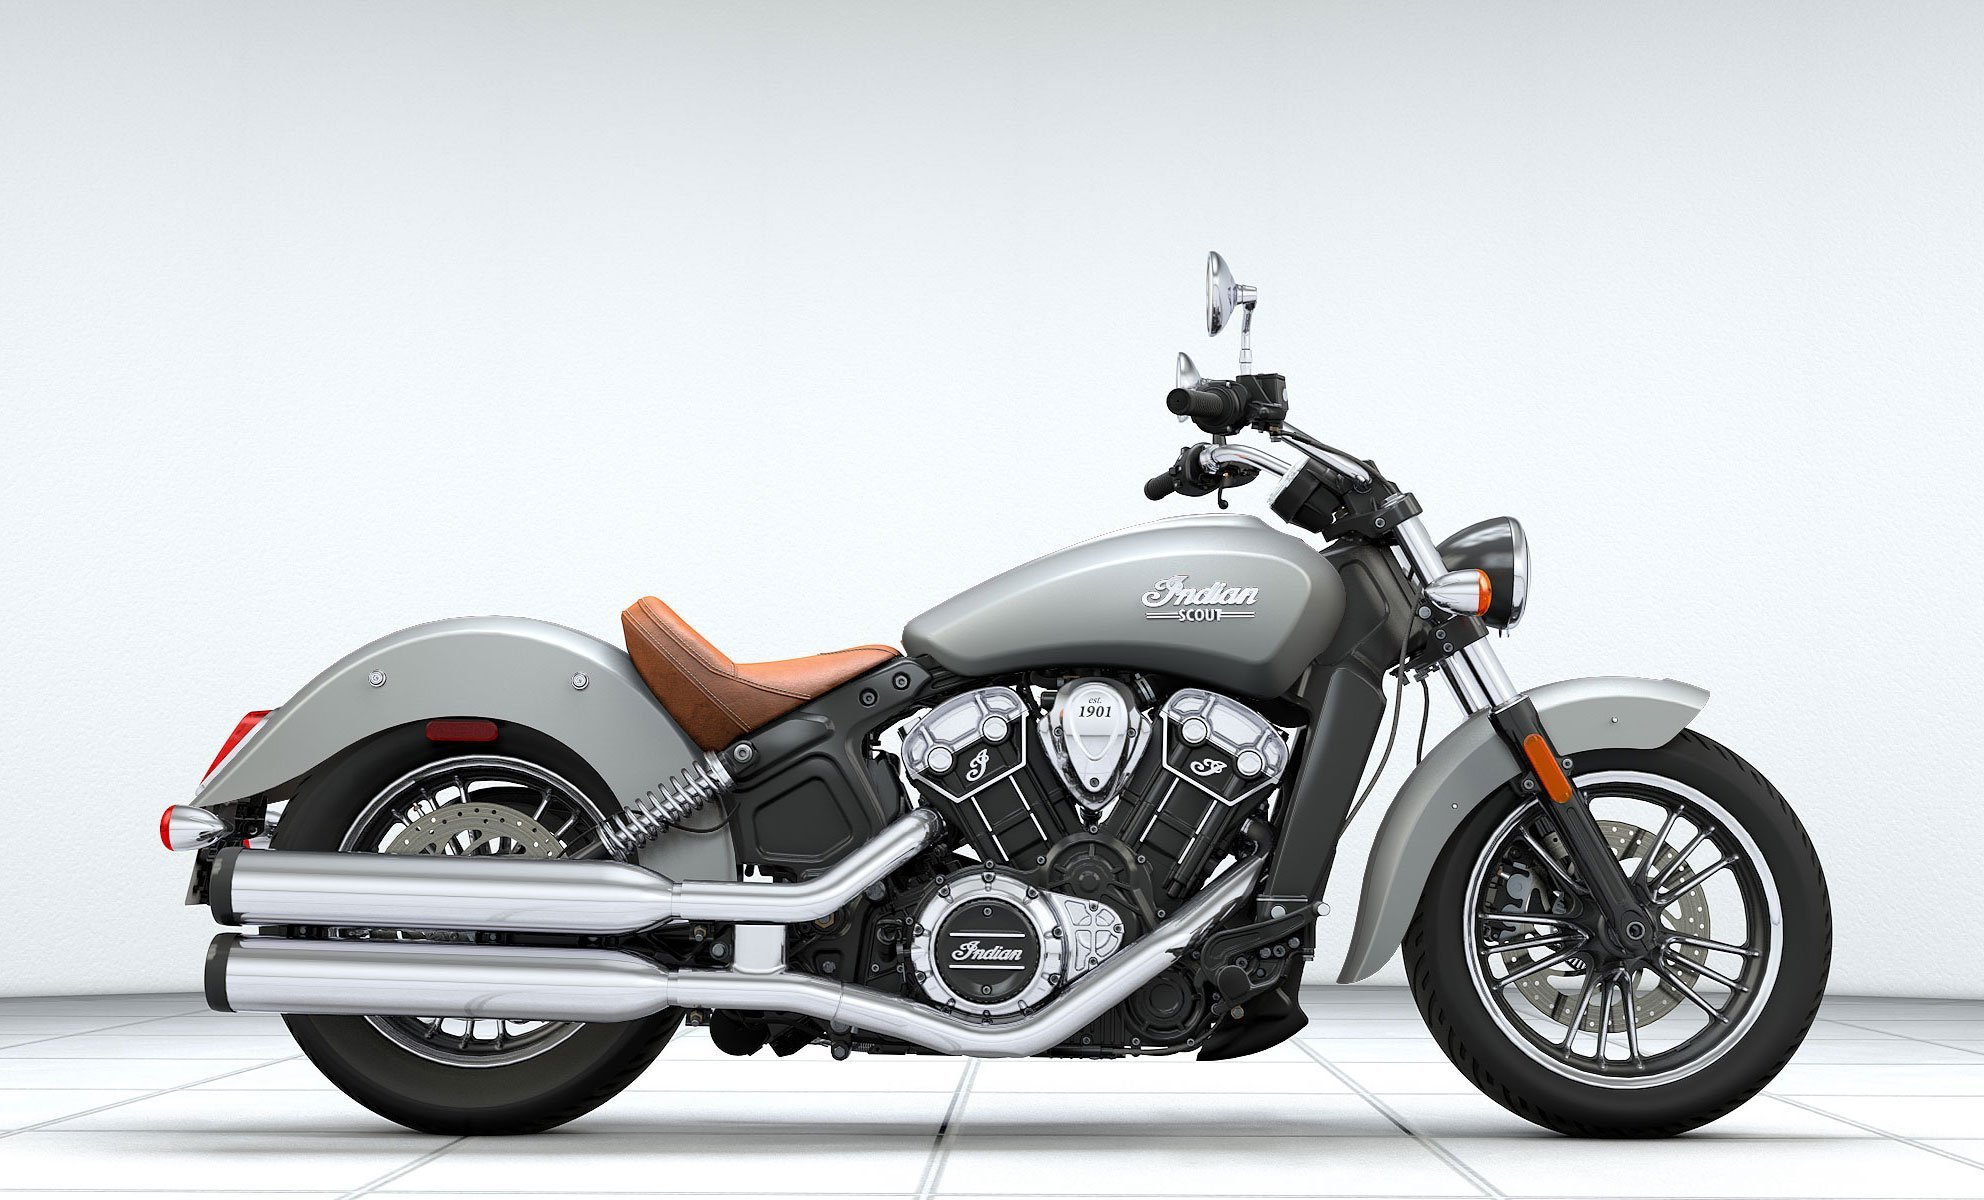 48] 2016 Indian Scout Wallpaper on WallpaperSafari 1984x1200